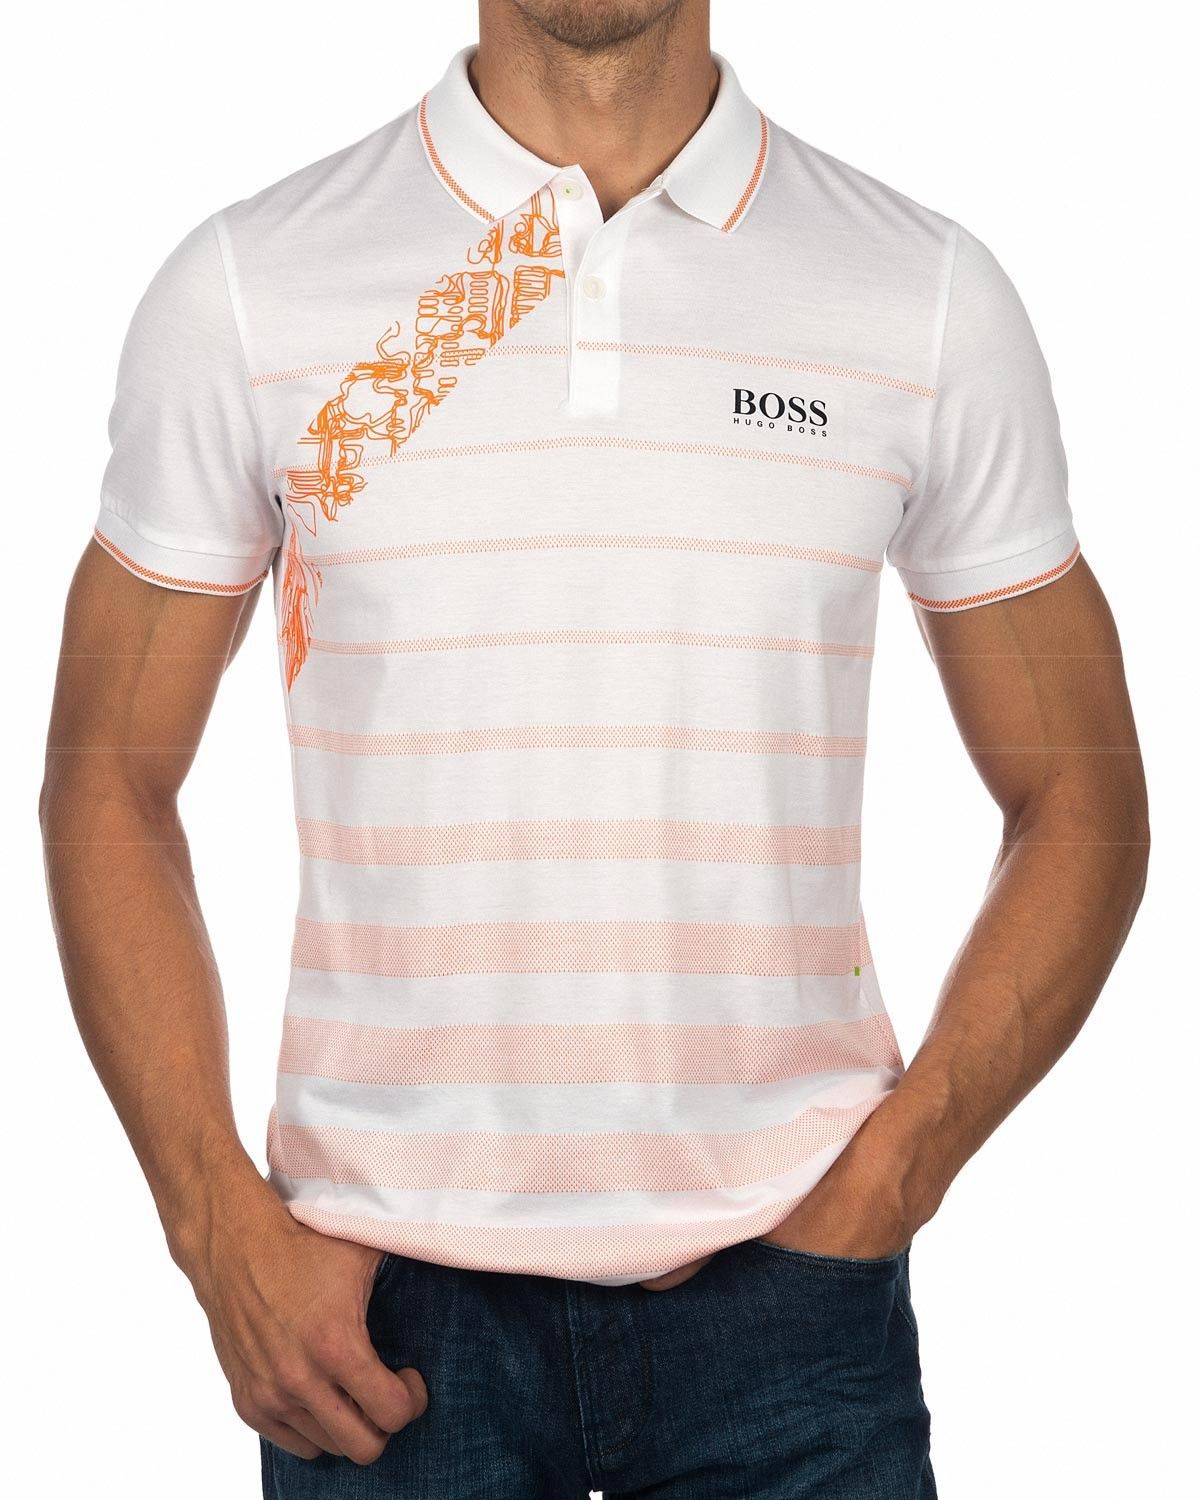 8c5b16d4a Hugo Boss Polo Shirt White & Orange - Paule Pro 2 in 2019 | Hugo ...